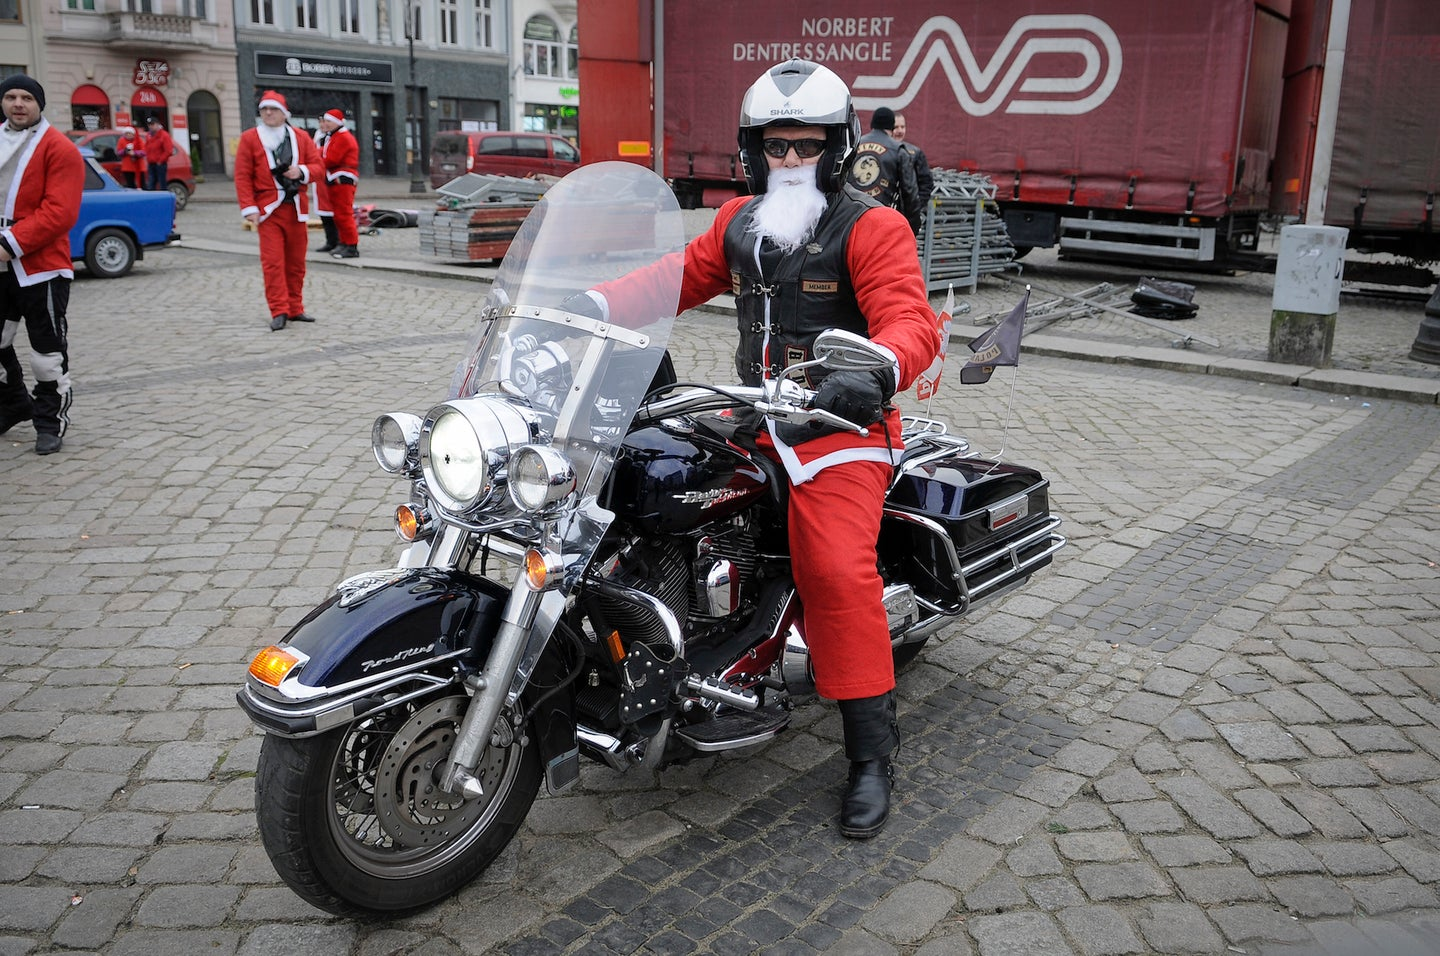 Poland: Santa Claus on Motorcycles for Children's Charity